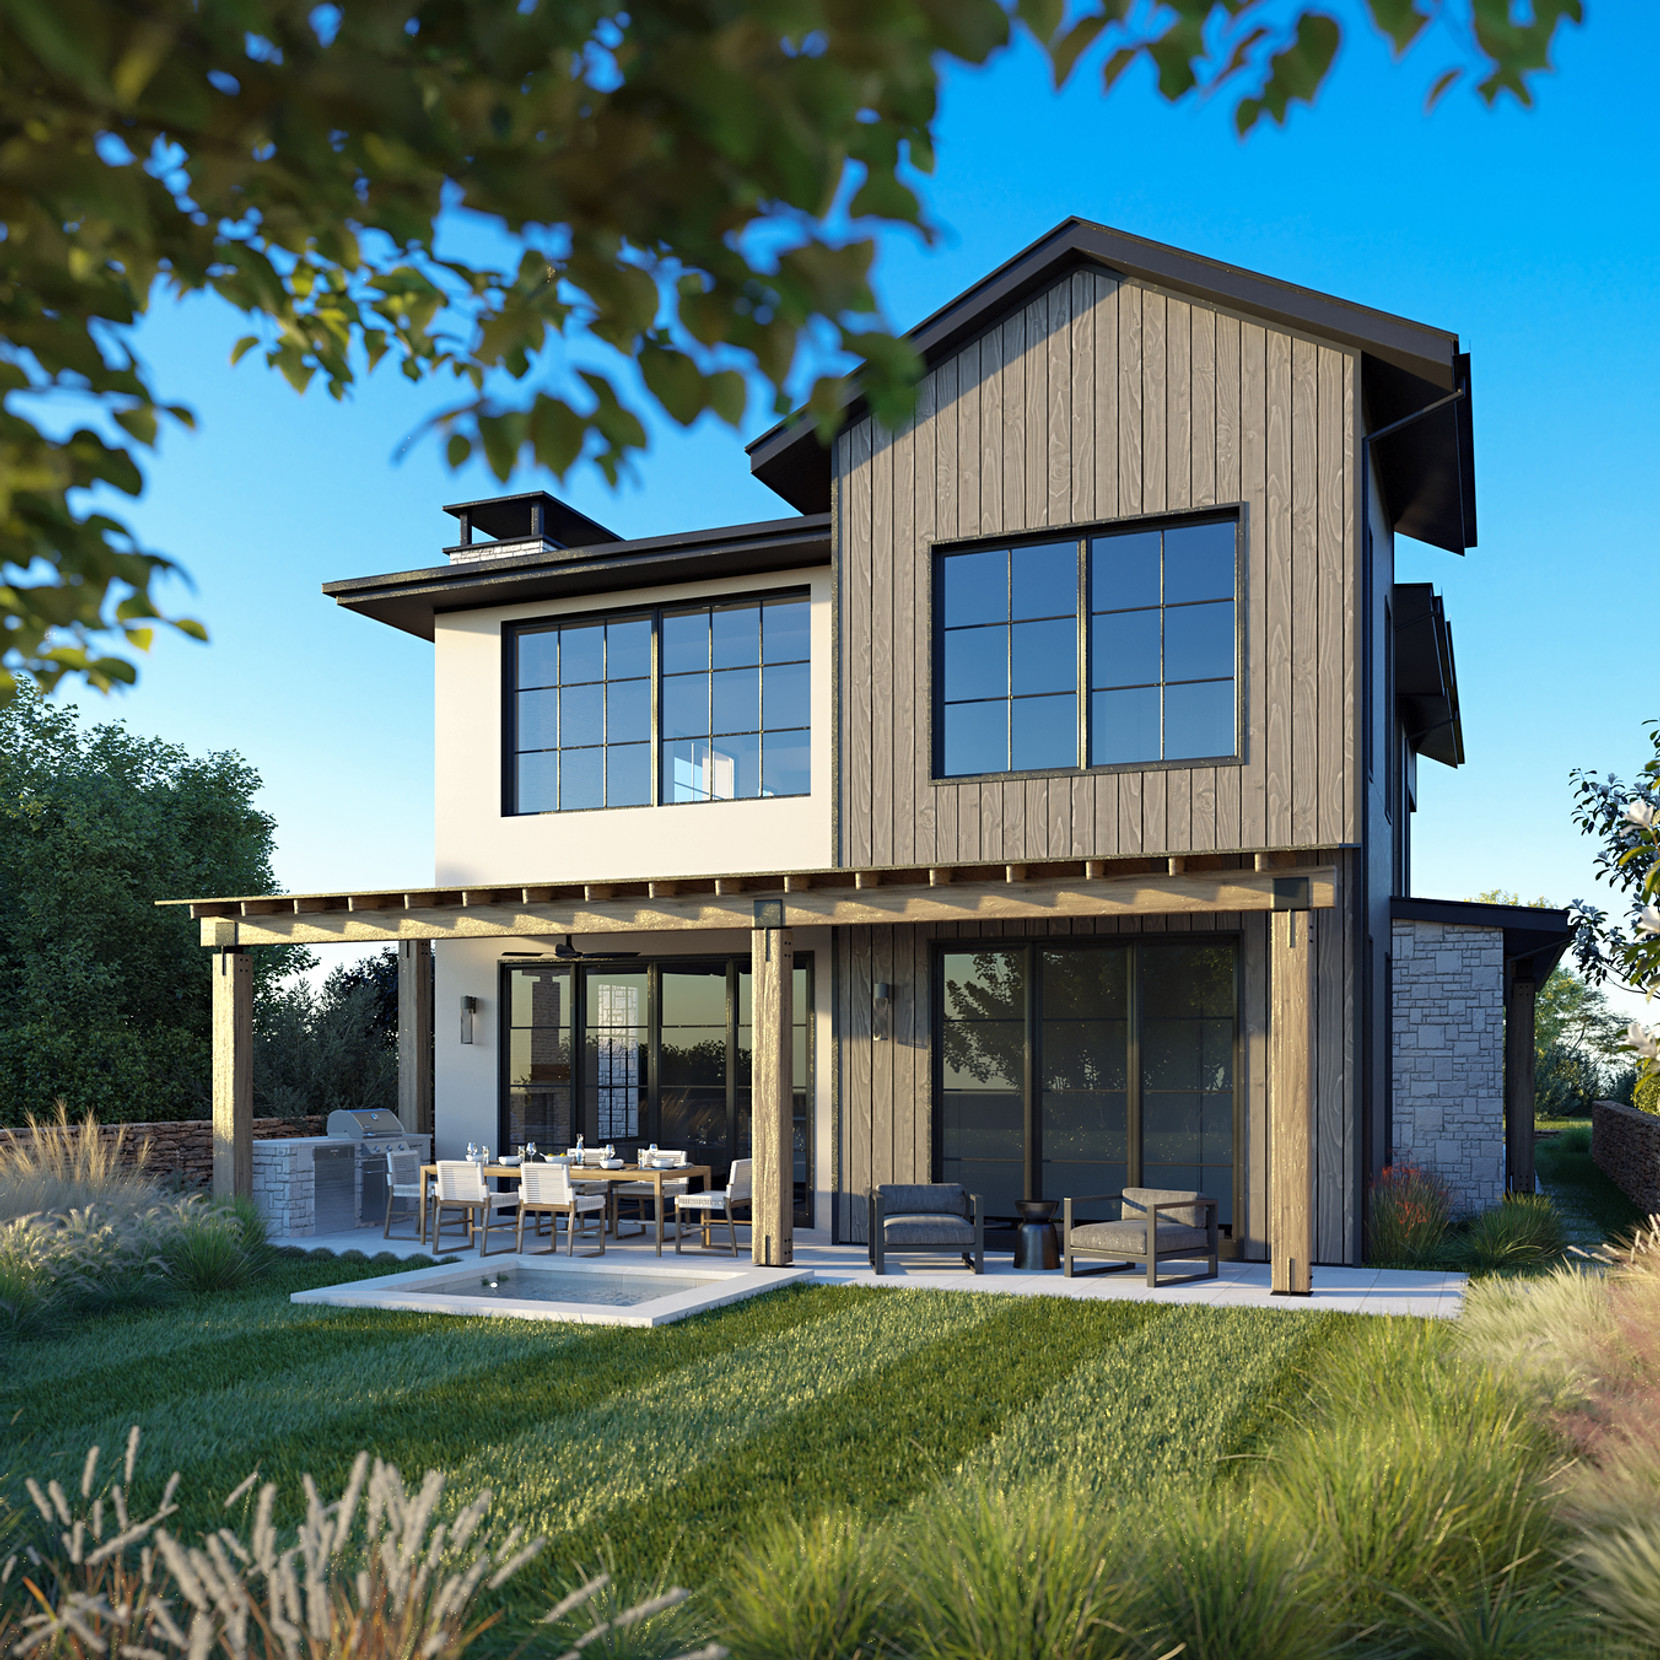 RENDER OF RANCH HOUSE